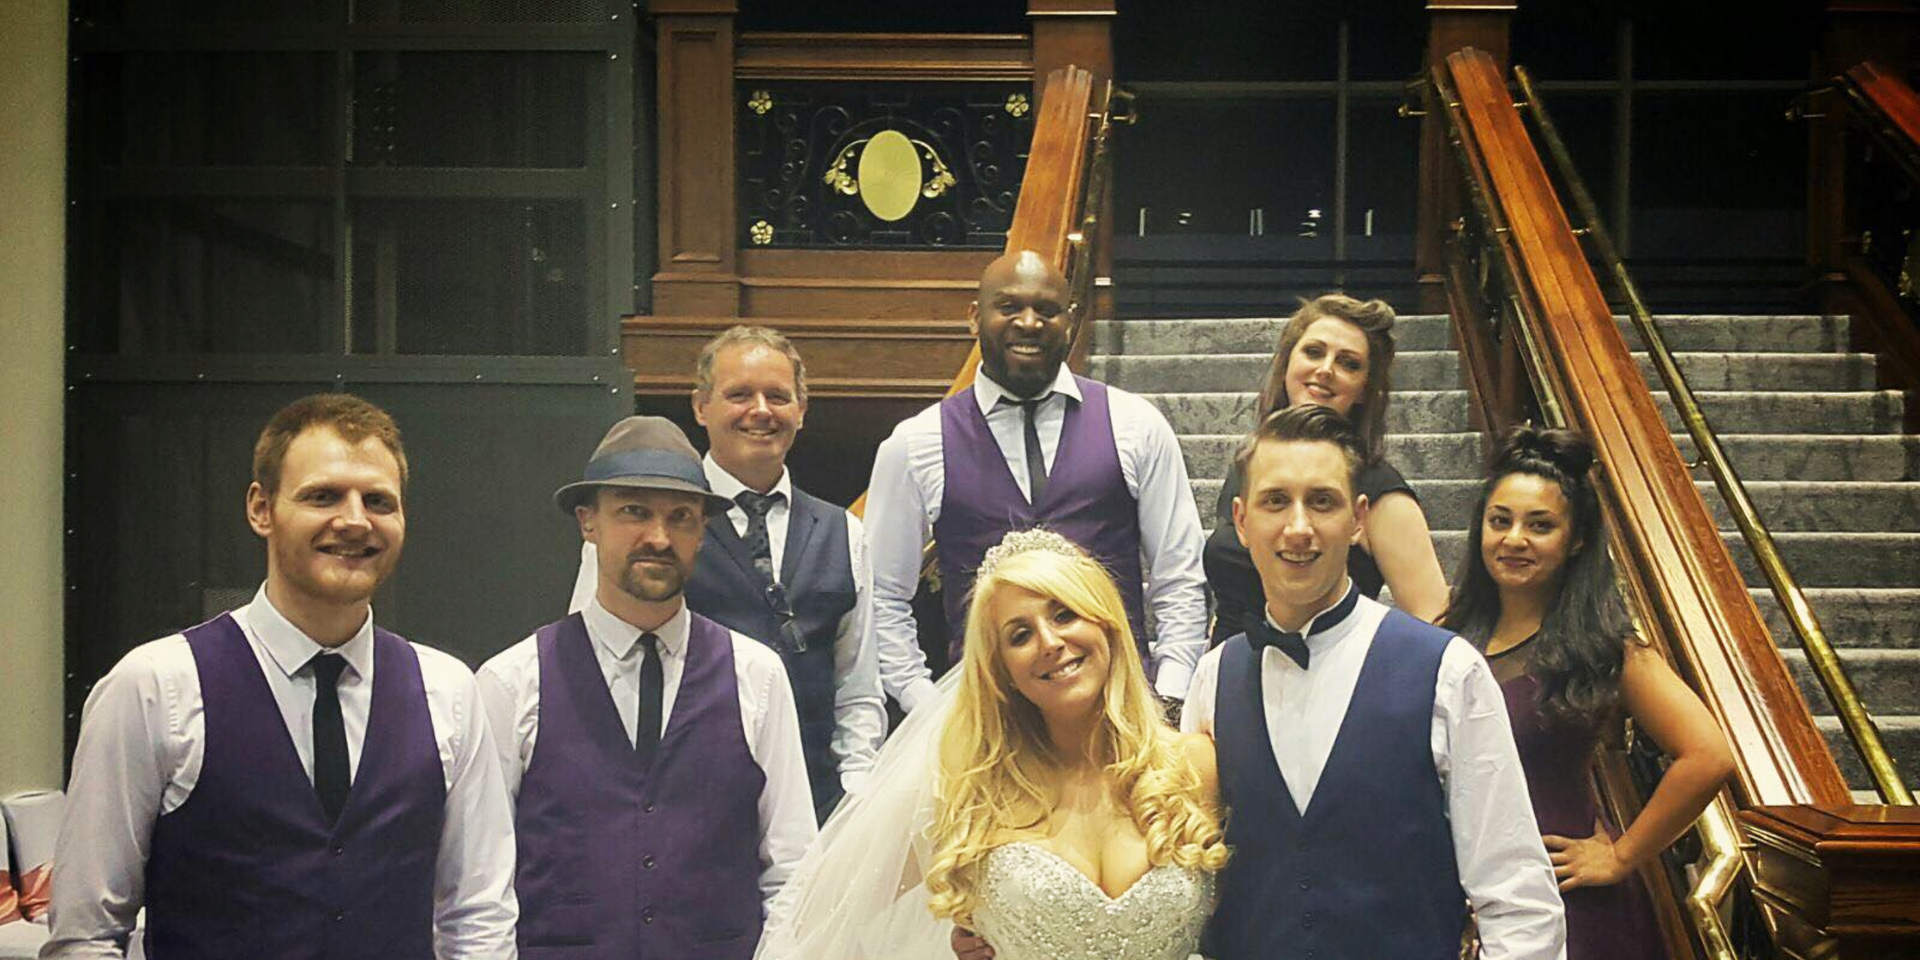 Best Wedding Band Manchester